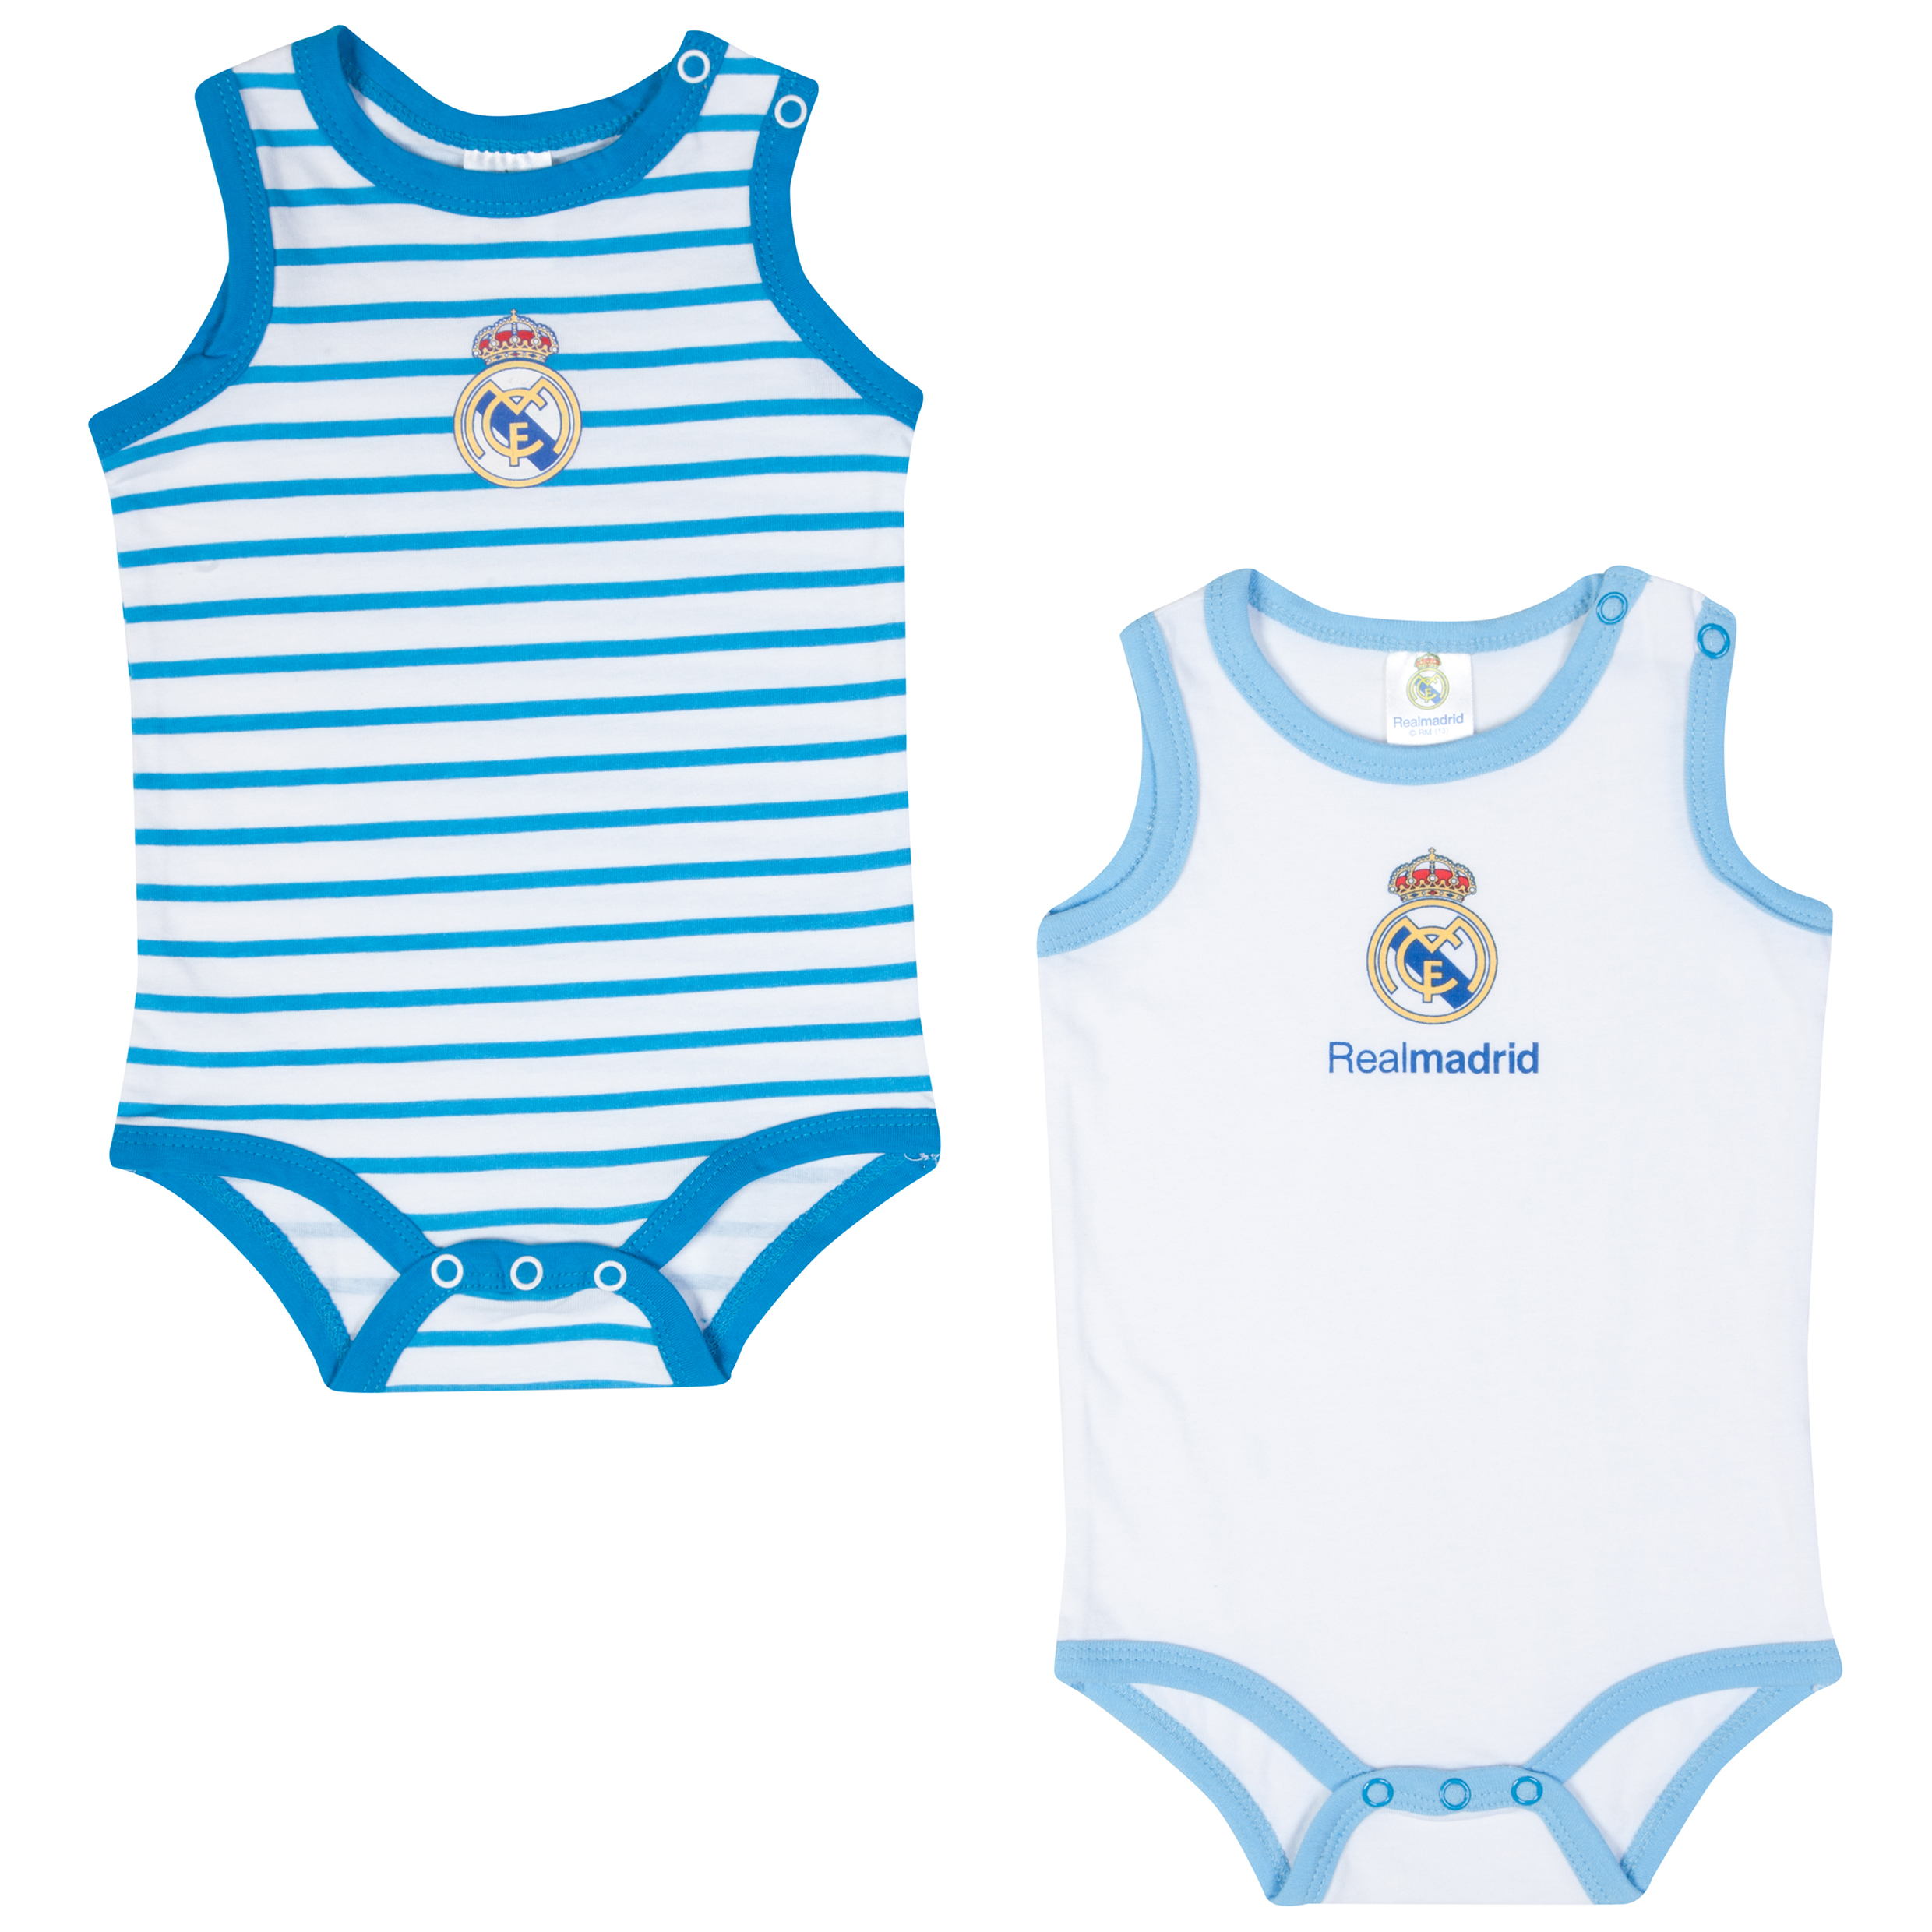 Real Madrid 2 PK Bodysuits - Blue/White - Baby Unisex